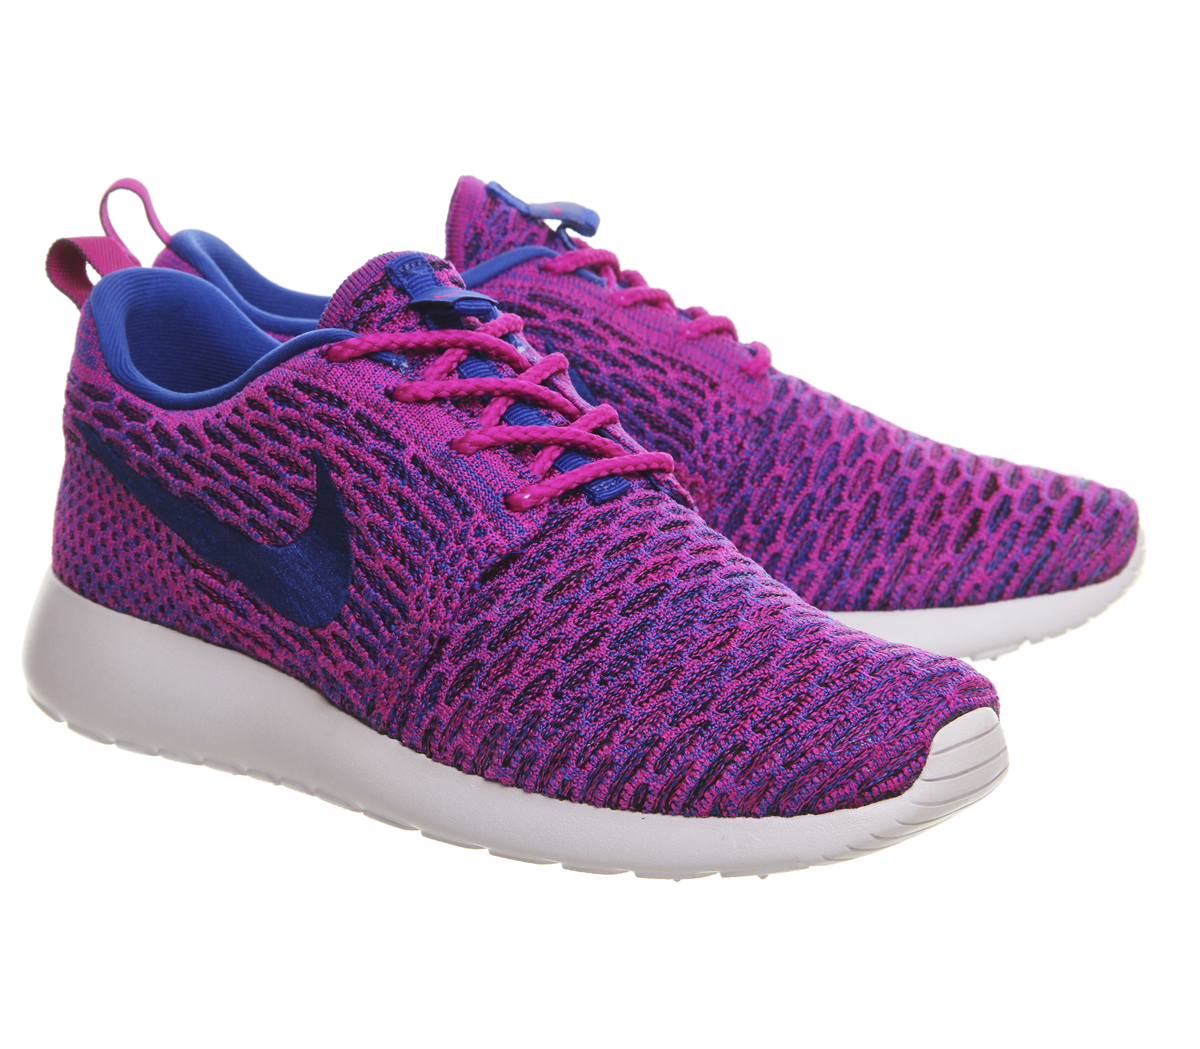 quality design f49e2 68082 ... sweden gallery. womens nike flyknit womens nike roshe runs 94fb1 017c6